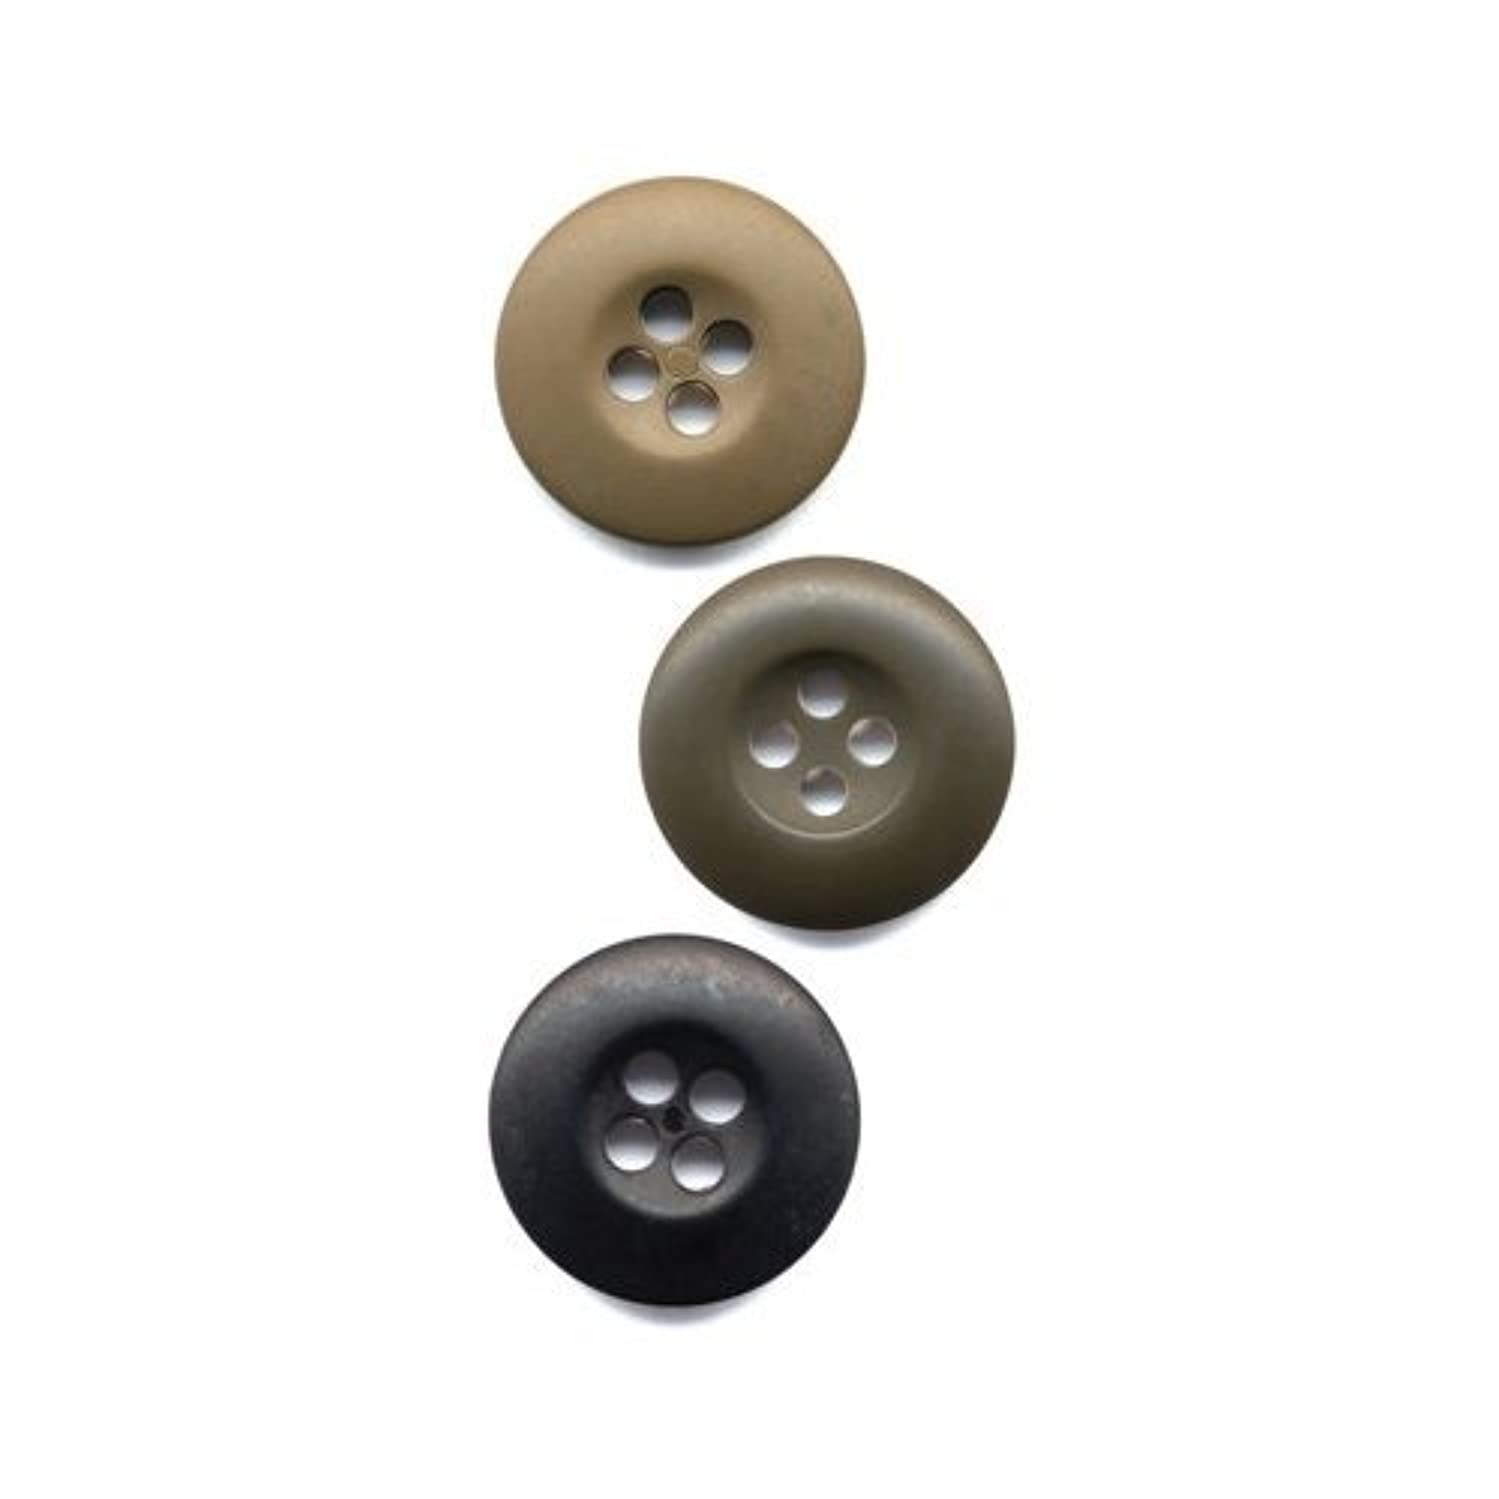 B.D.U. Buttons - Available In Several Colors